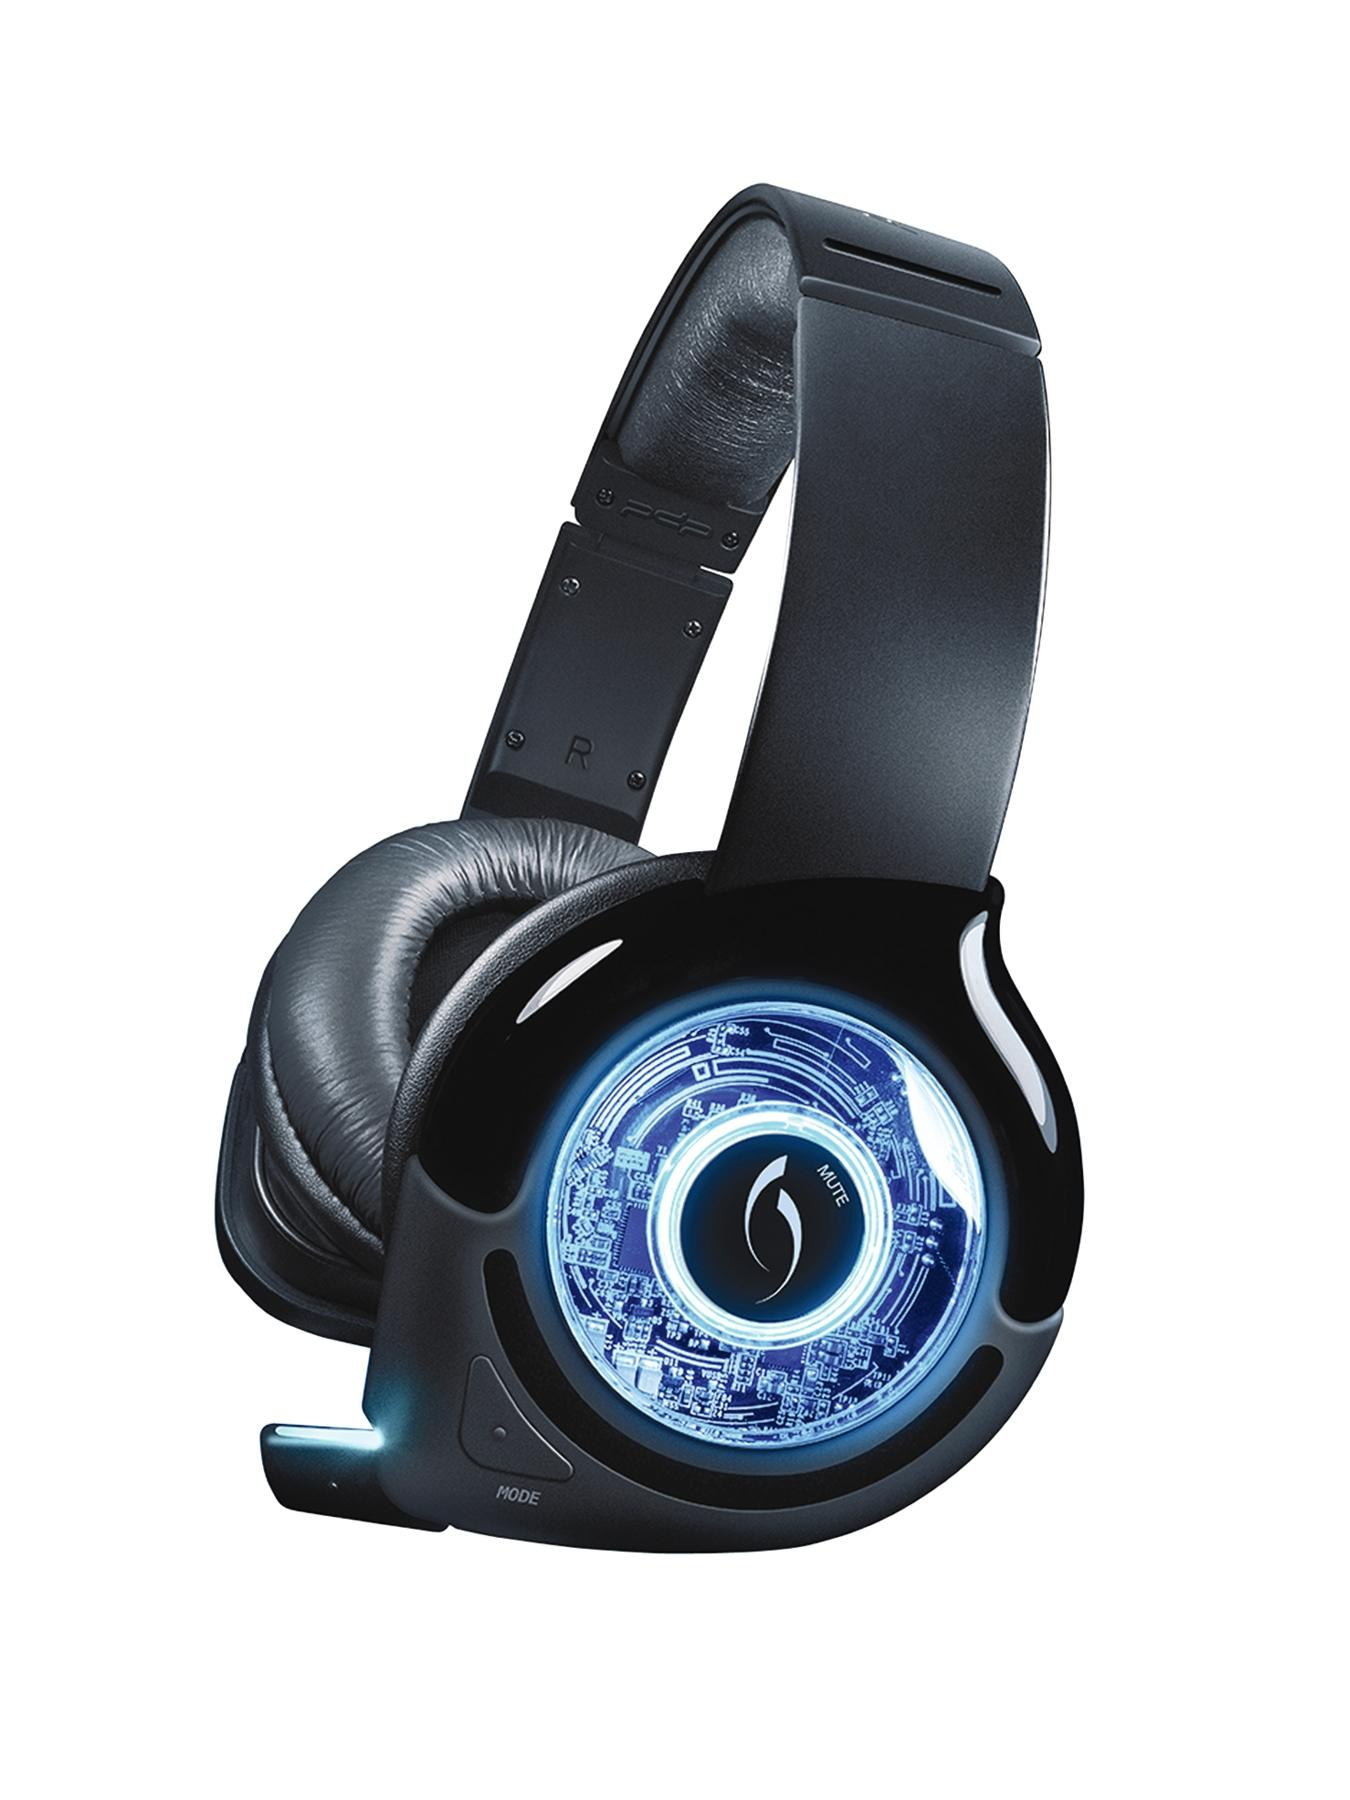 Prismatic Gaming Headset for PS3, Xbox 360, Wii and PC